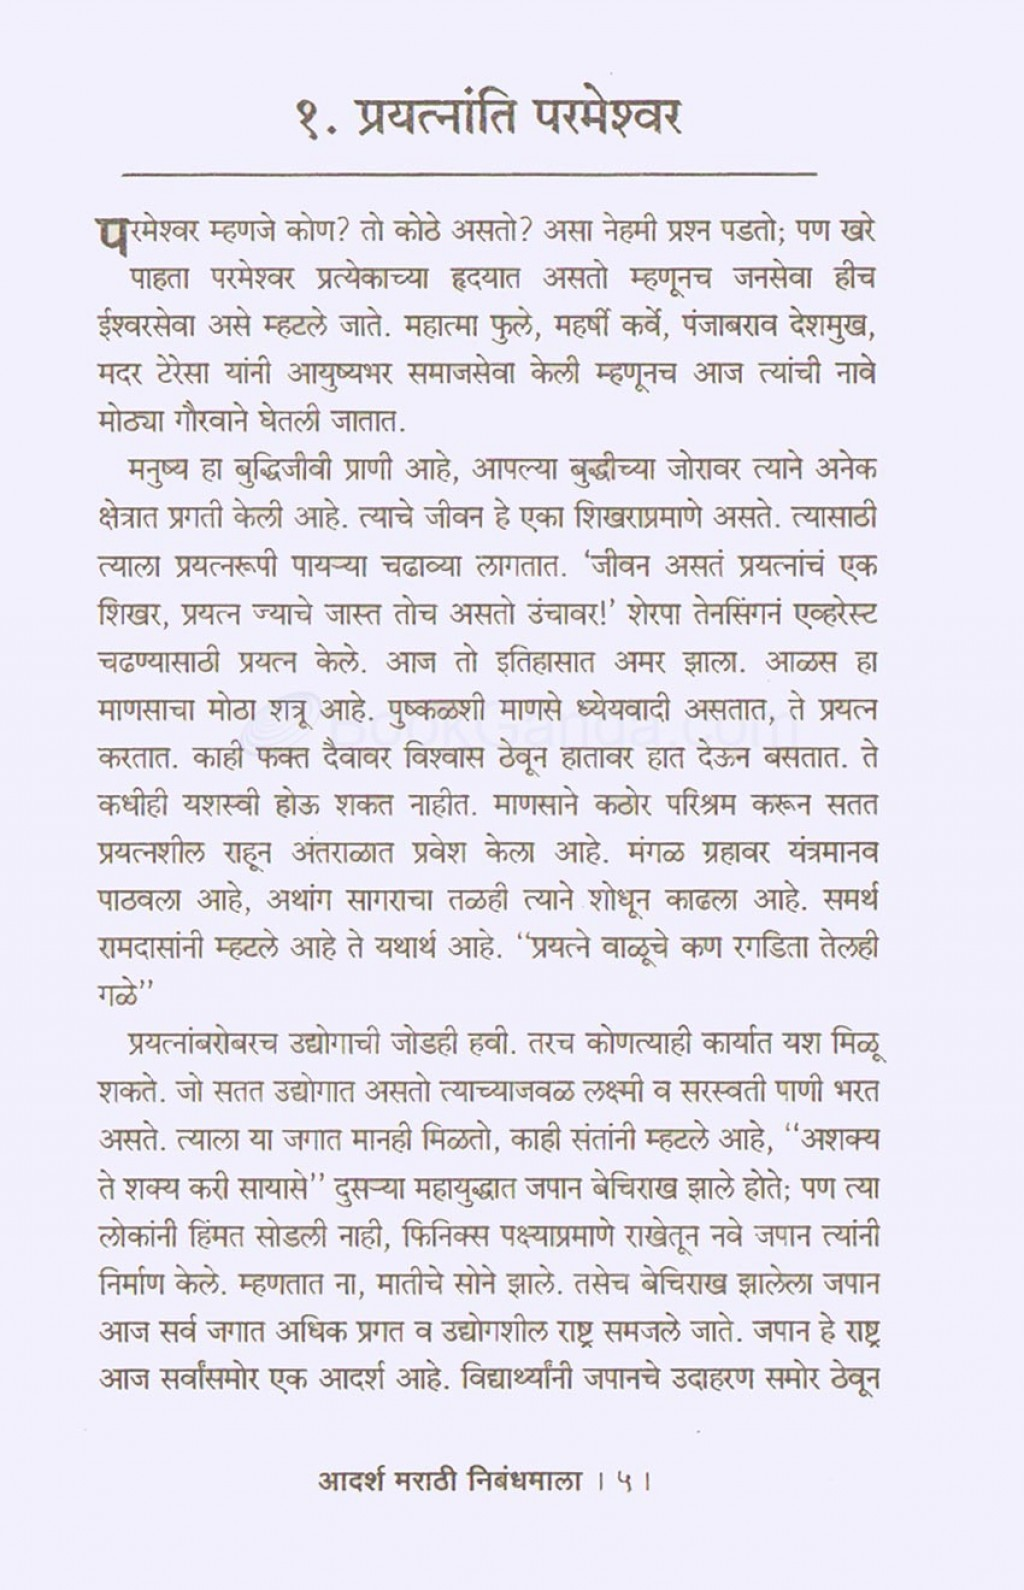 007 Page5 Empathy Essay Excellent Pdf In Hindi To Kill A Mockingbird Large